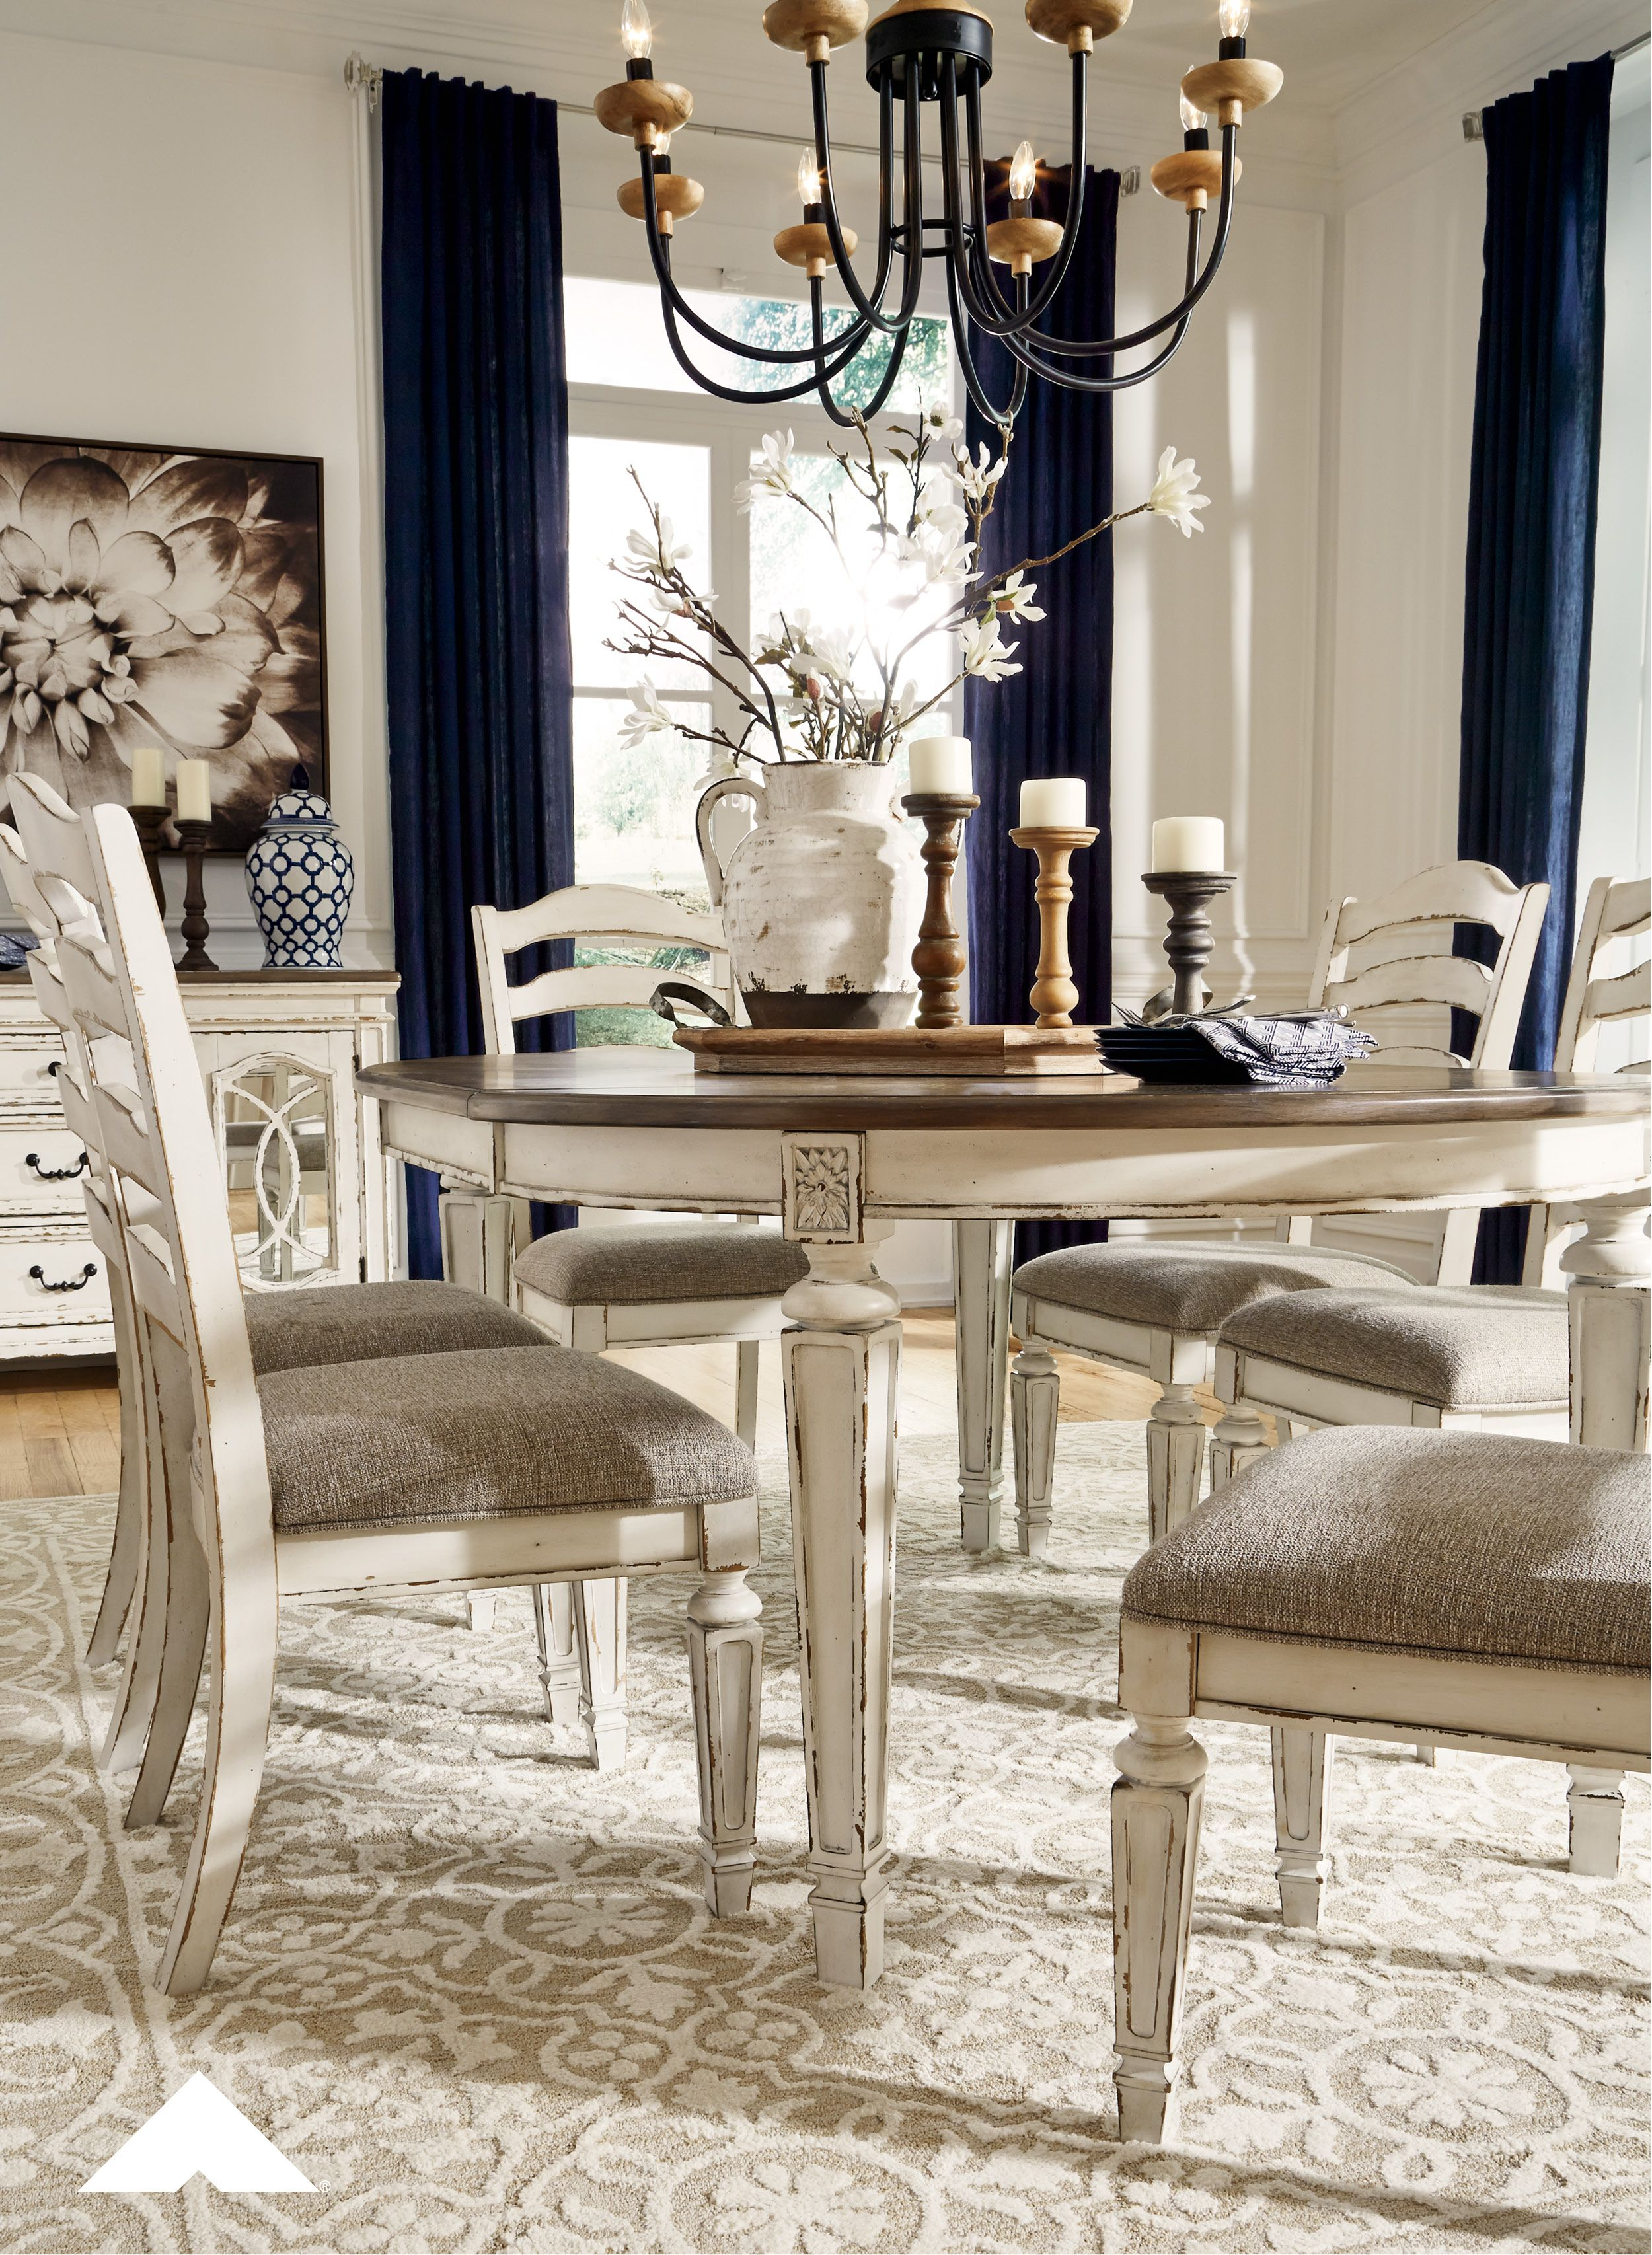 Raelyn Chipped White Dining Table Chairs Bon Appetite This Dining Set Has A Dining Room Table Centerpieces French Country Dining Room Country Dining Rooms